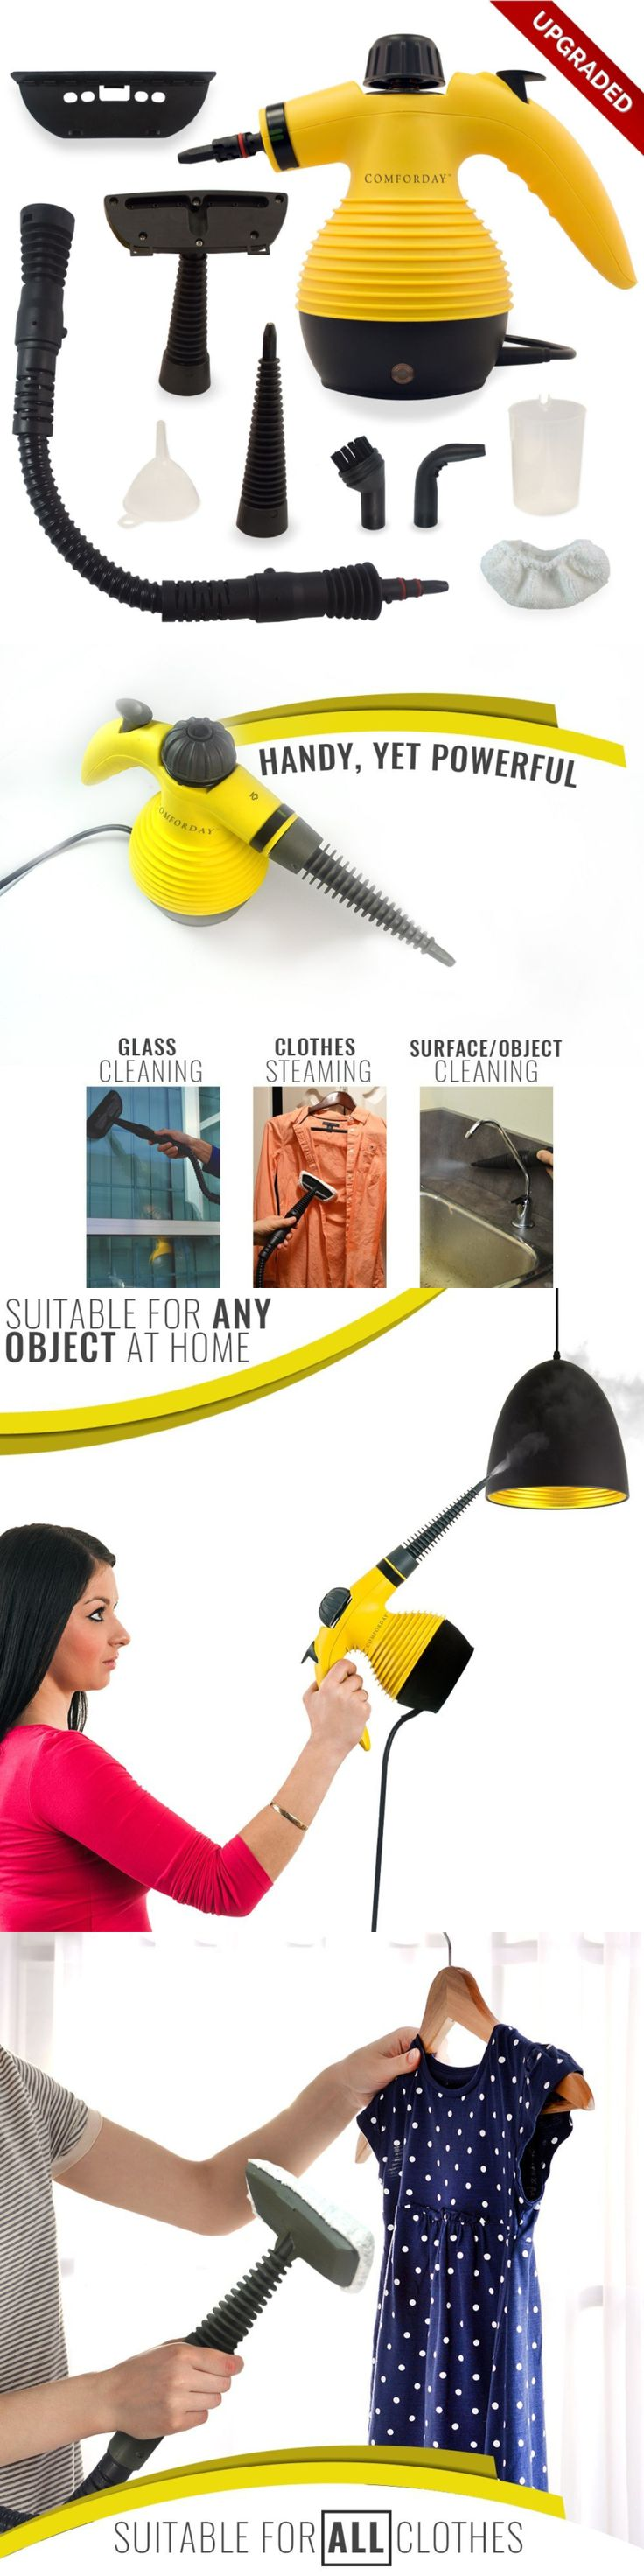 Wallpaper Tools and Accessories 180112: Handheld Multi Purpose Steam Cleaner Compact Design Ideal For Carpet, Floor, Veh -> BUY IT NOW ONLY: $38.11 on eBay!